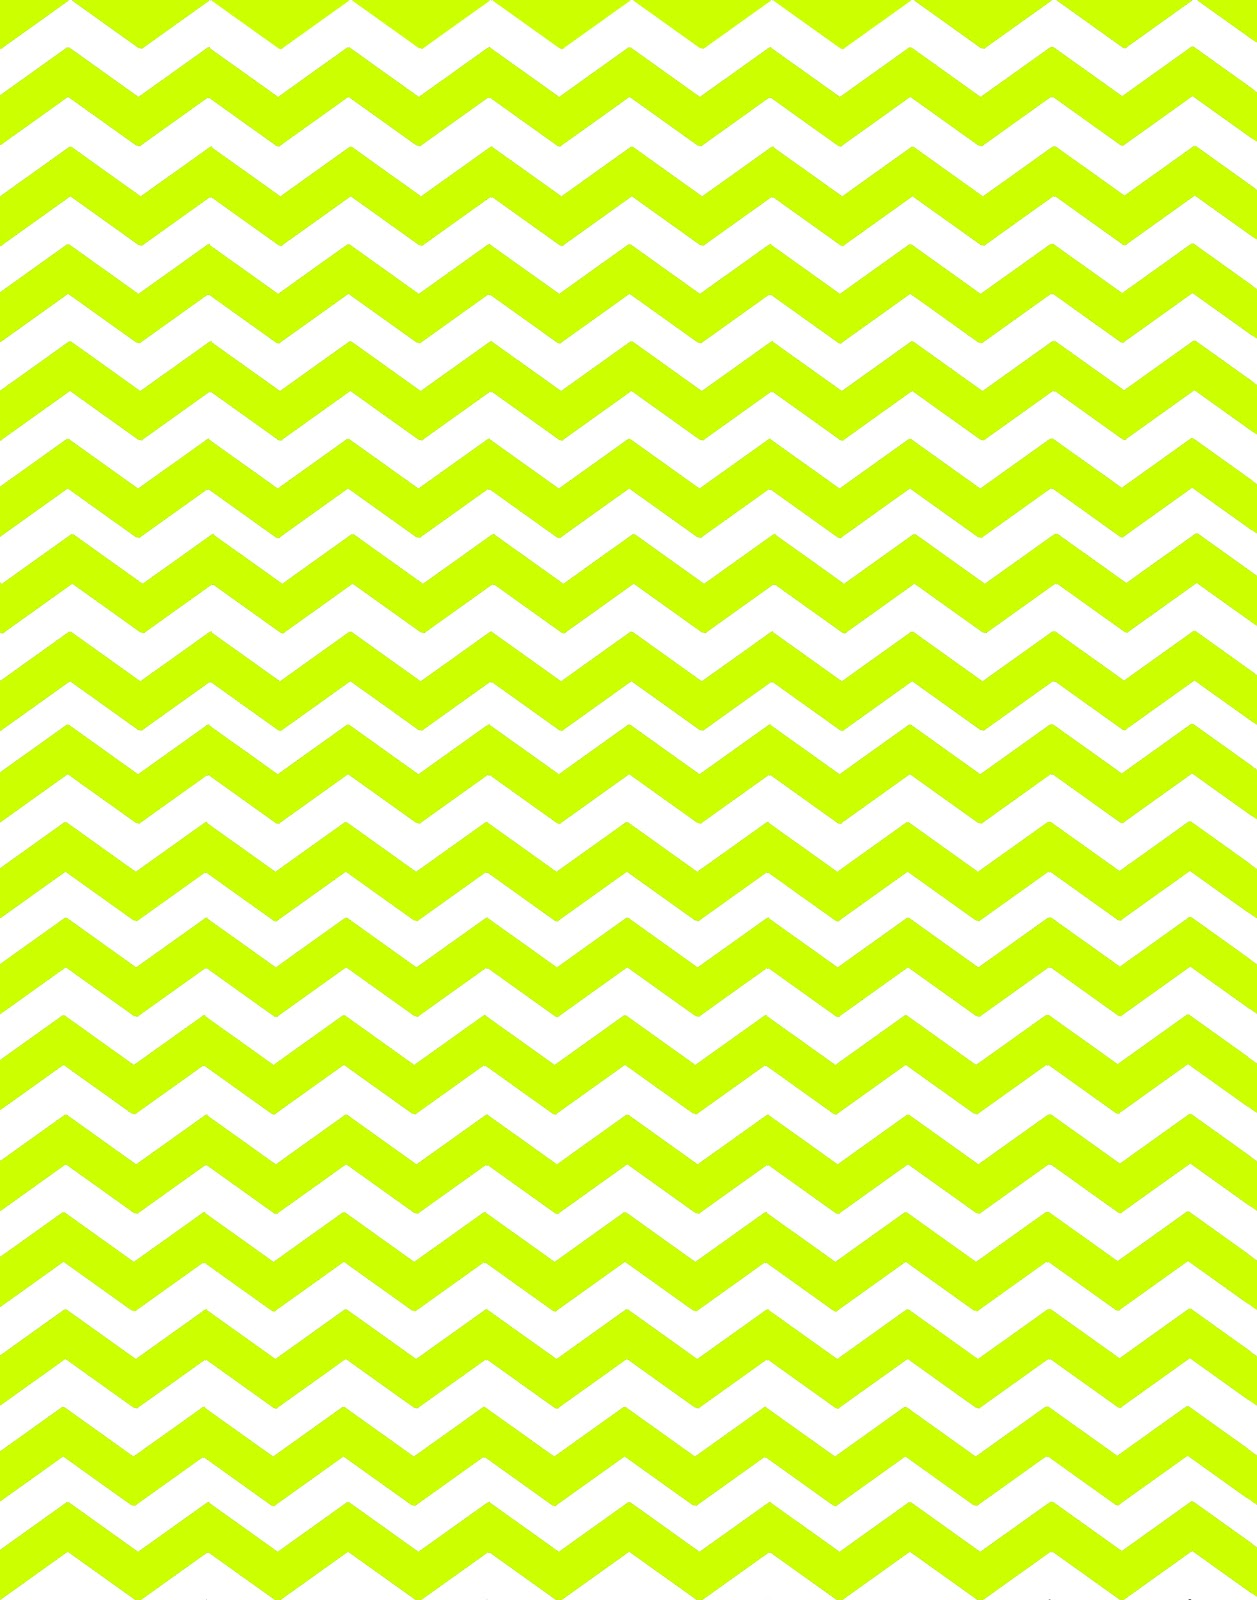 printable Doodle Craft 16 New Colors Chevron background patterns 1257x1600